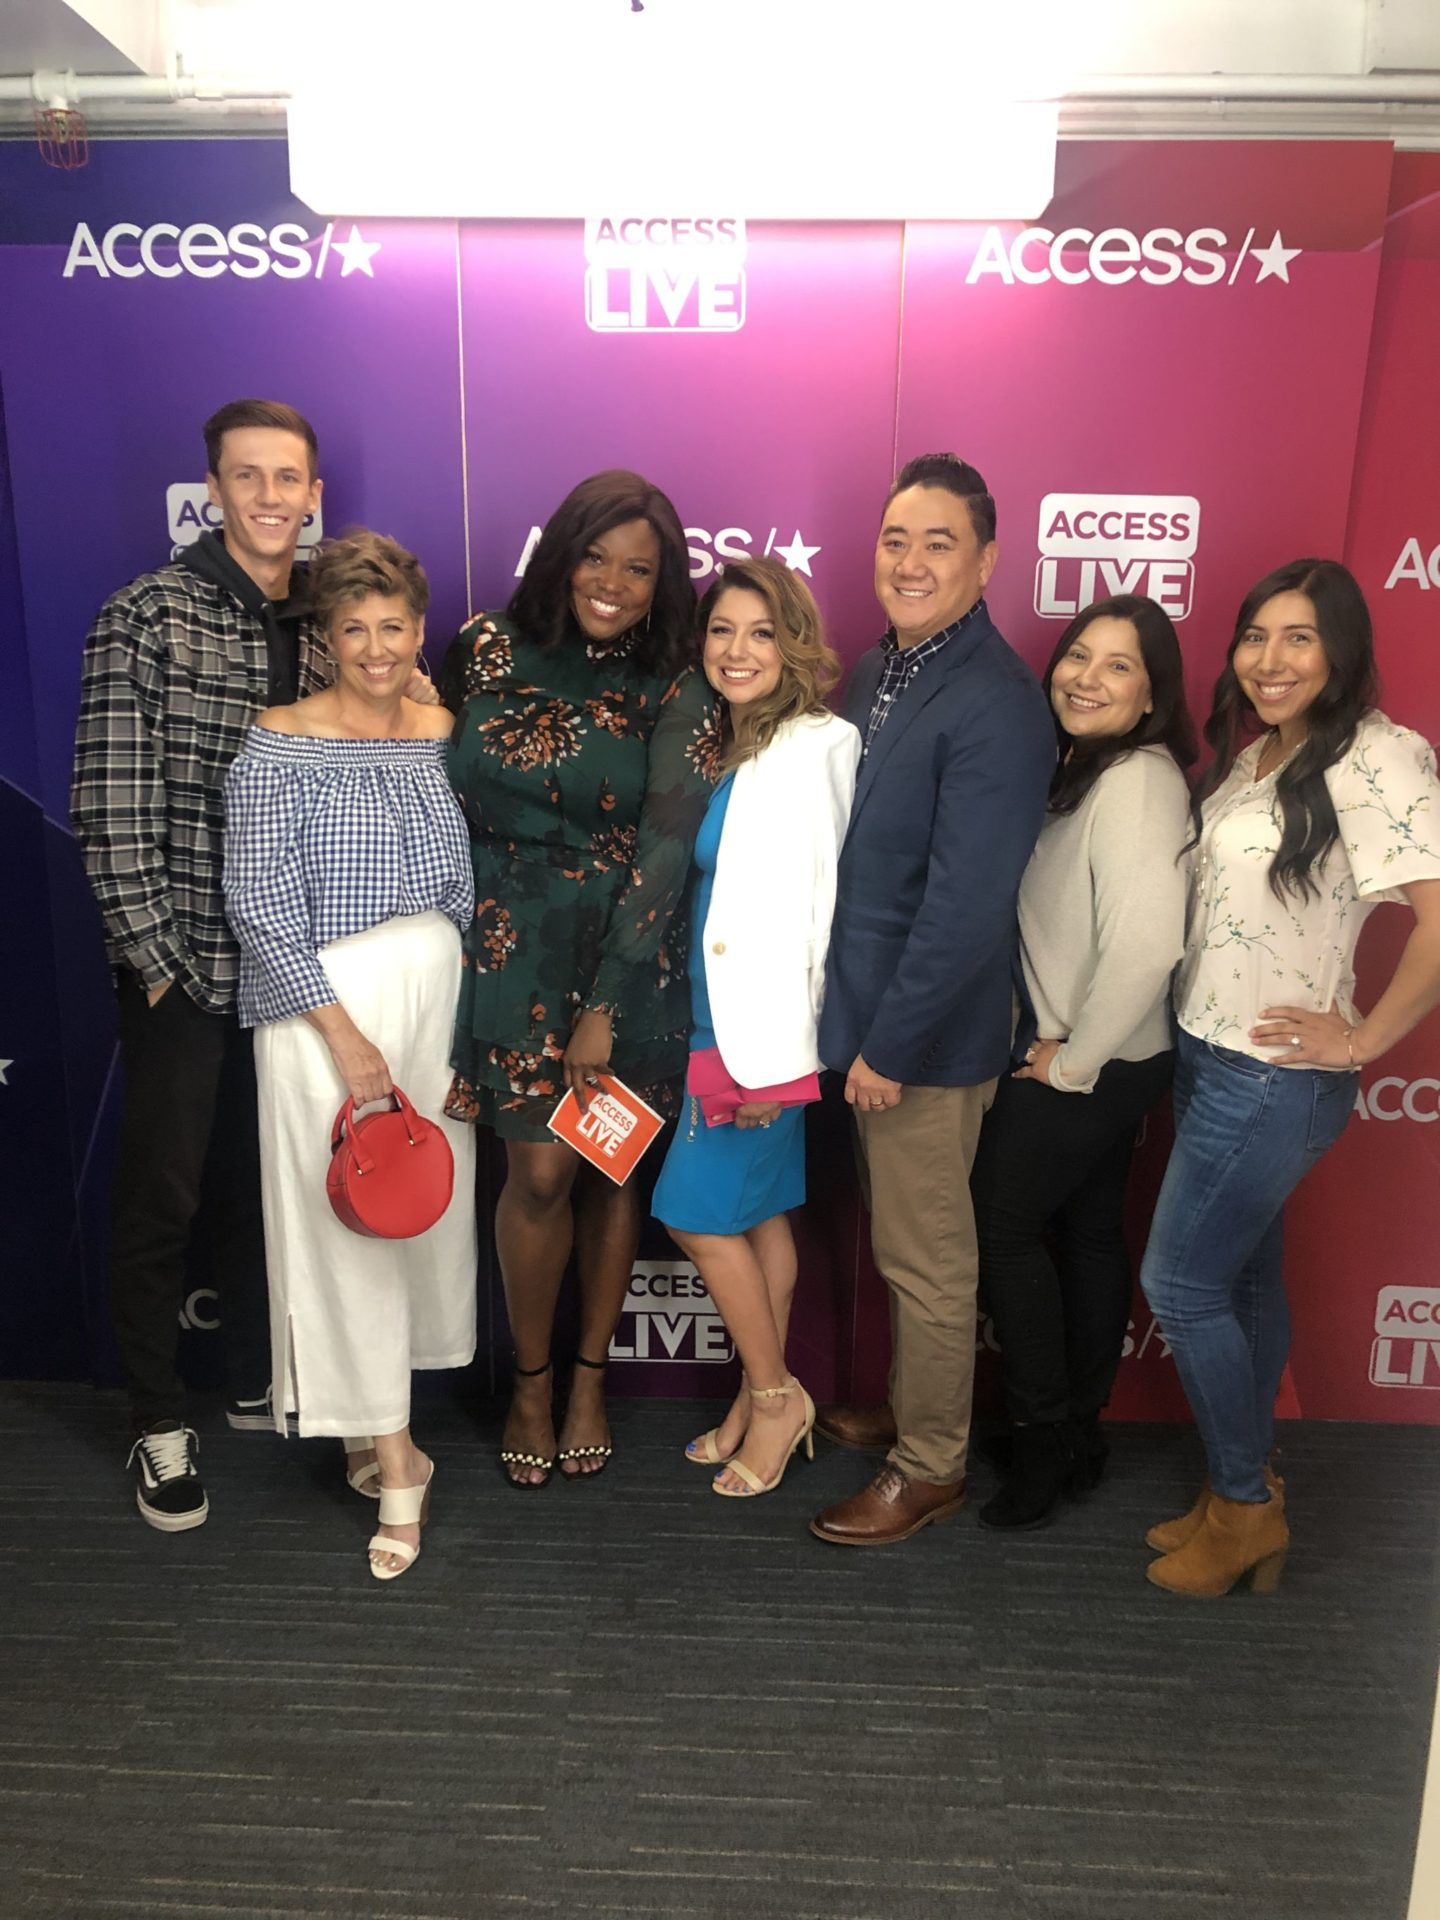 access live makeover monday cancer group